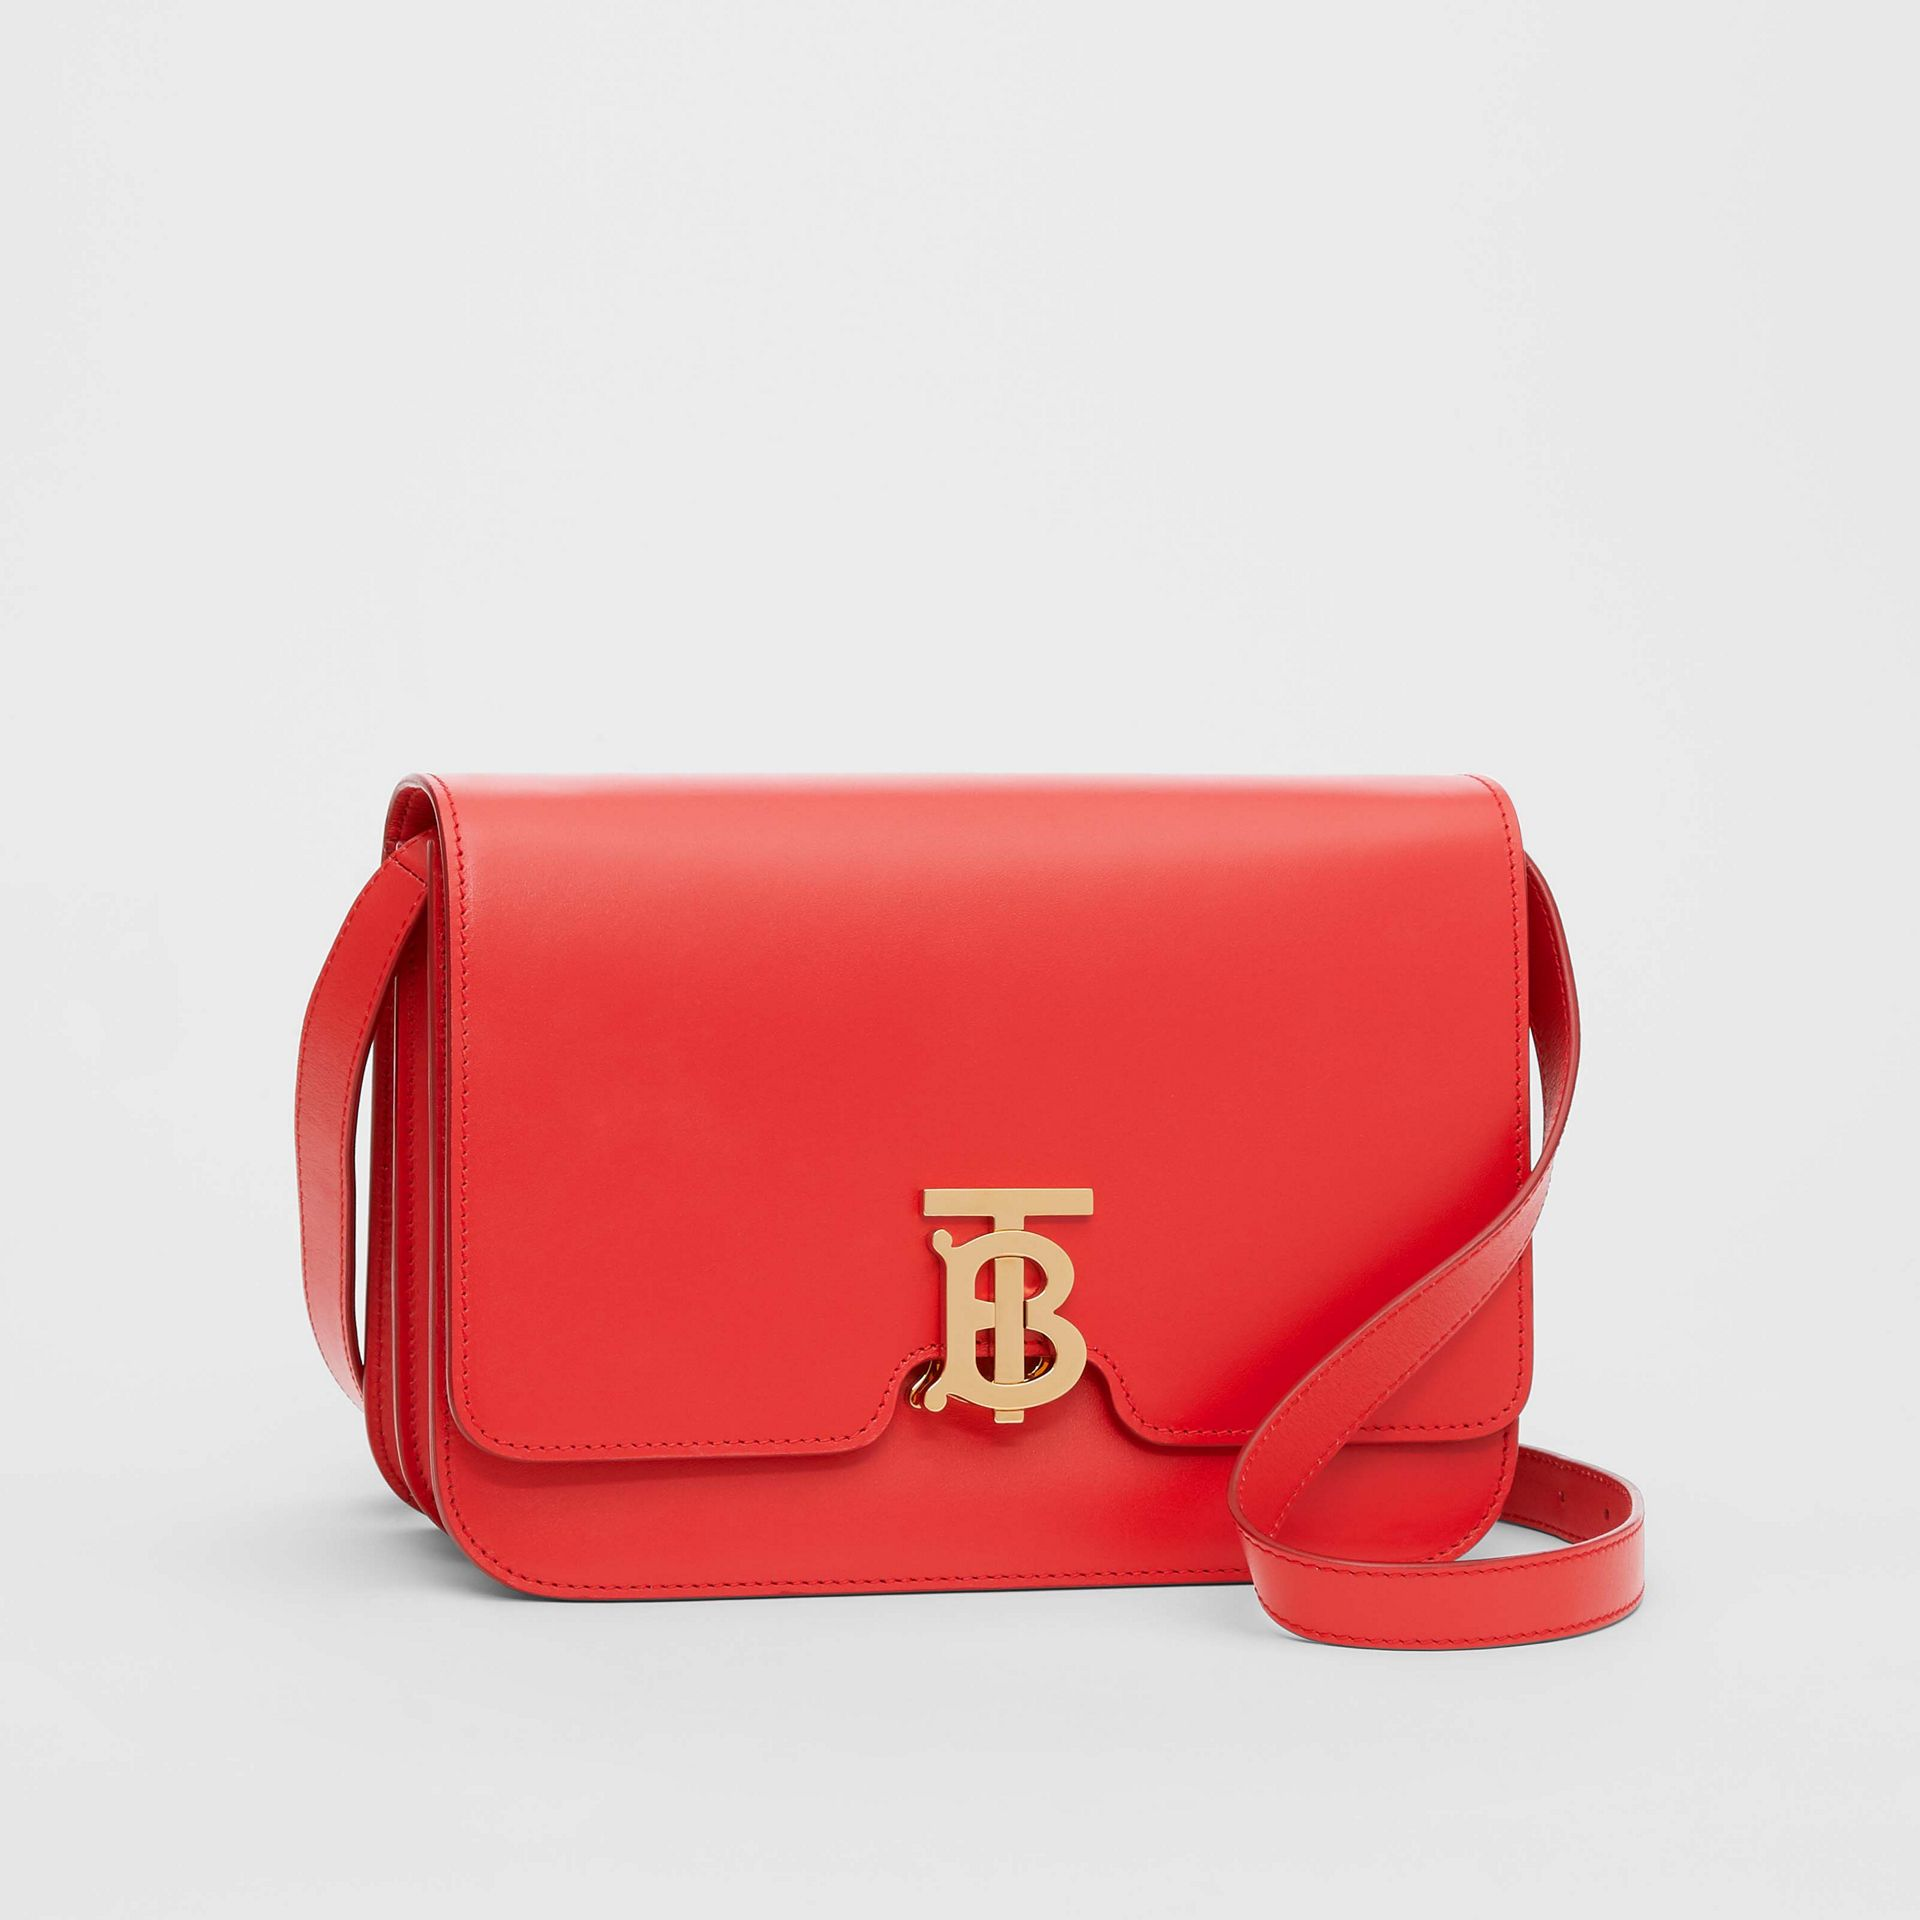 Medium Leather TB Bag in Bright Red | Burberry - gallery image 6